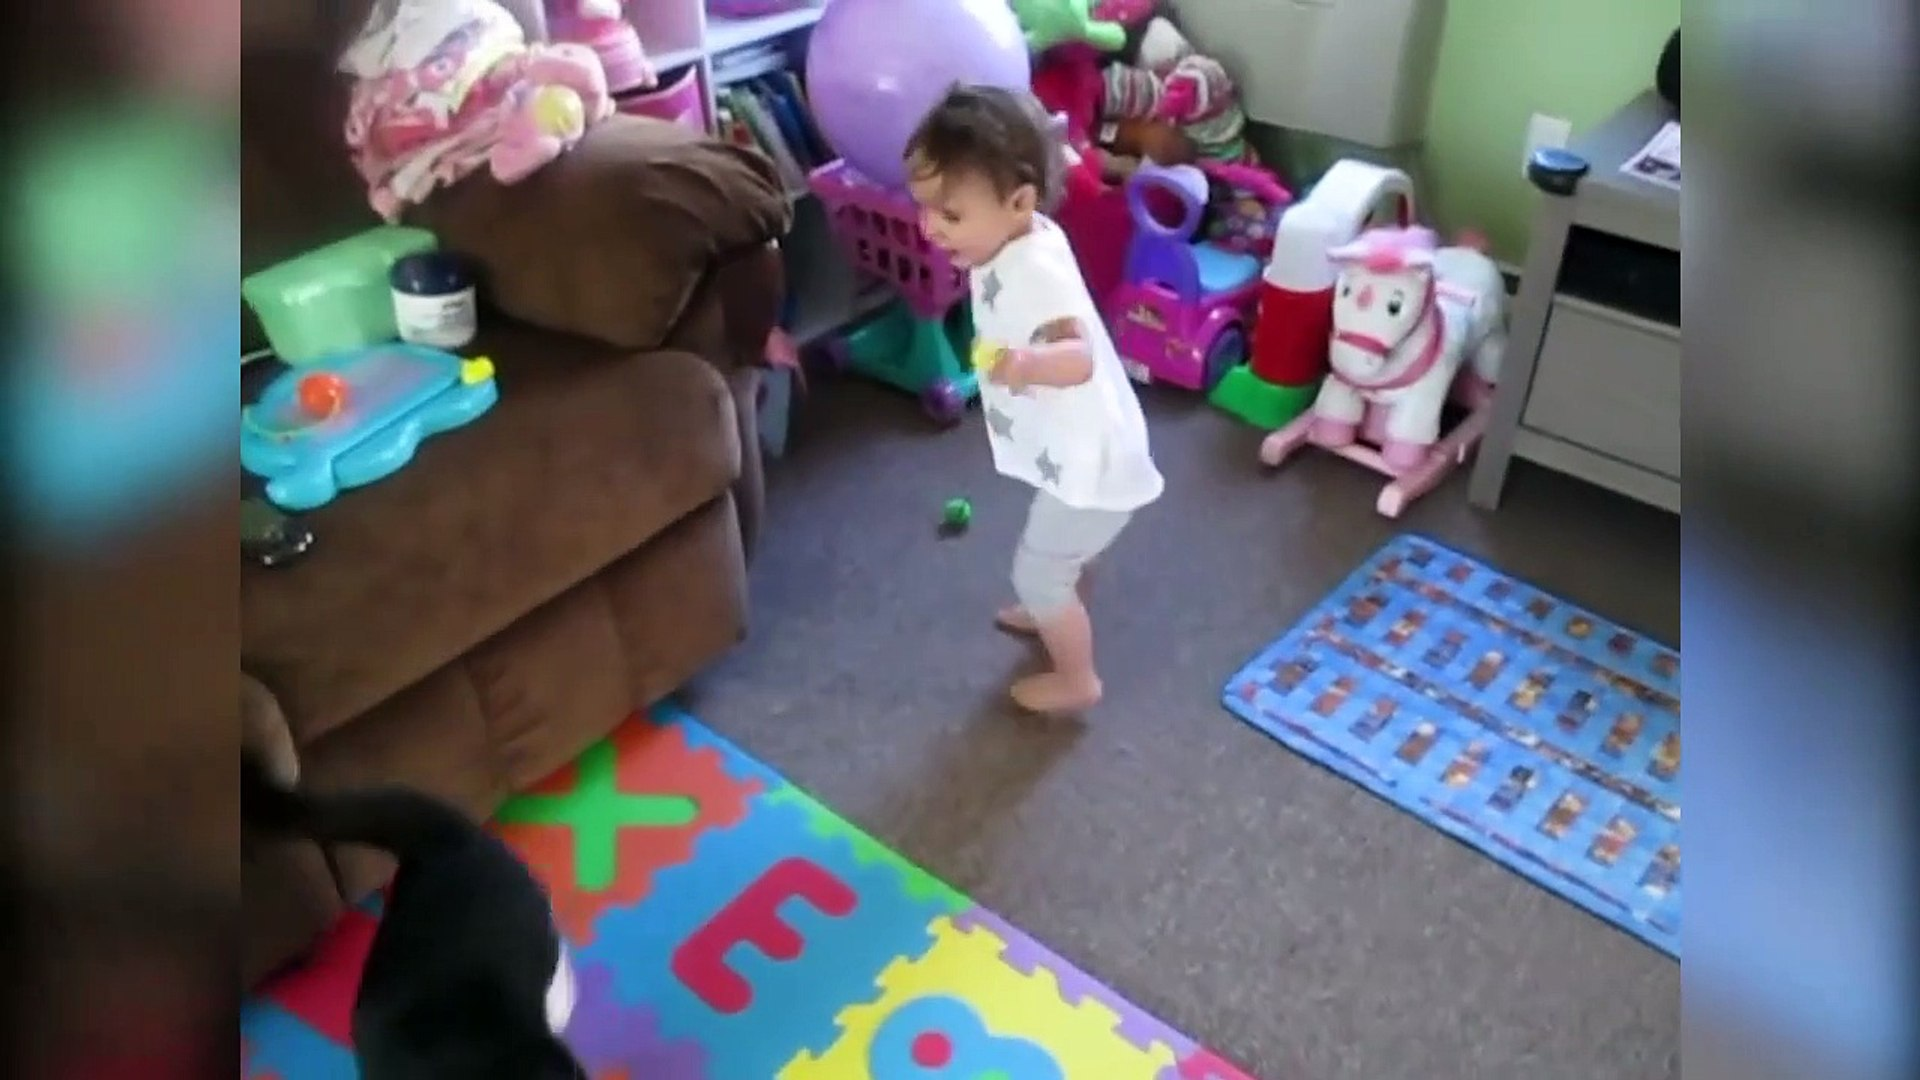 Funniest Cute Kids & Pw Video Bloopers Caught On Tape Weekly Compilat